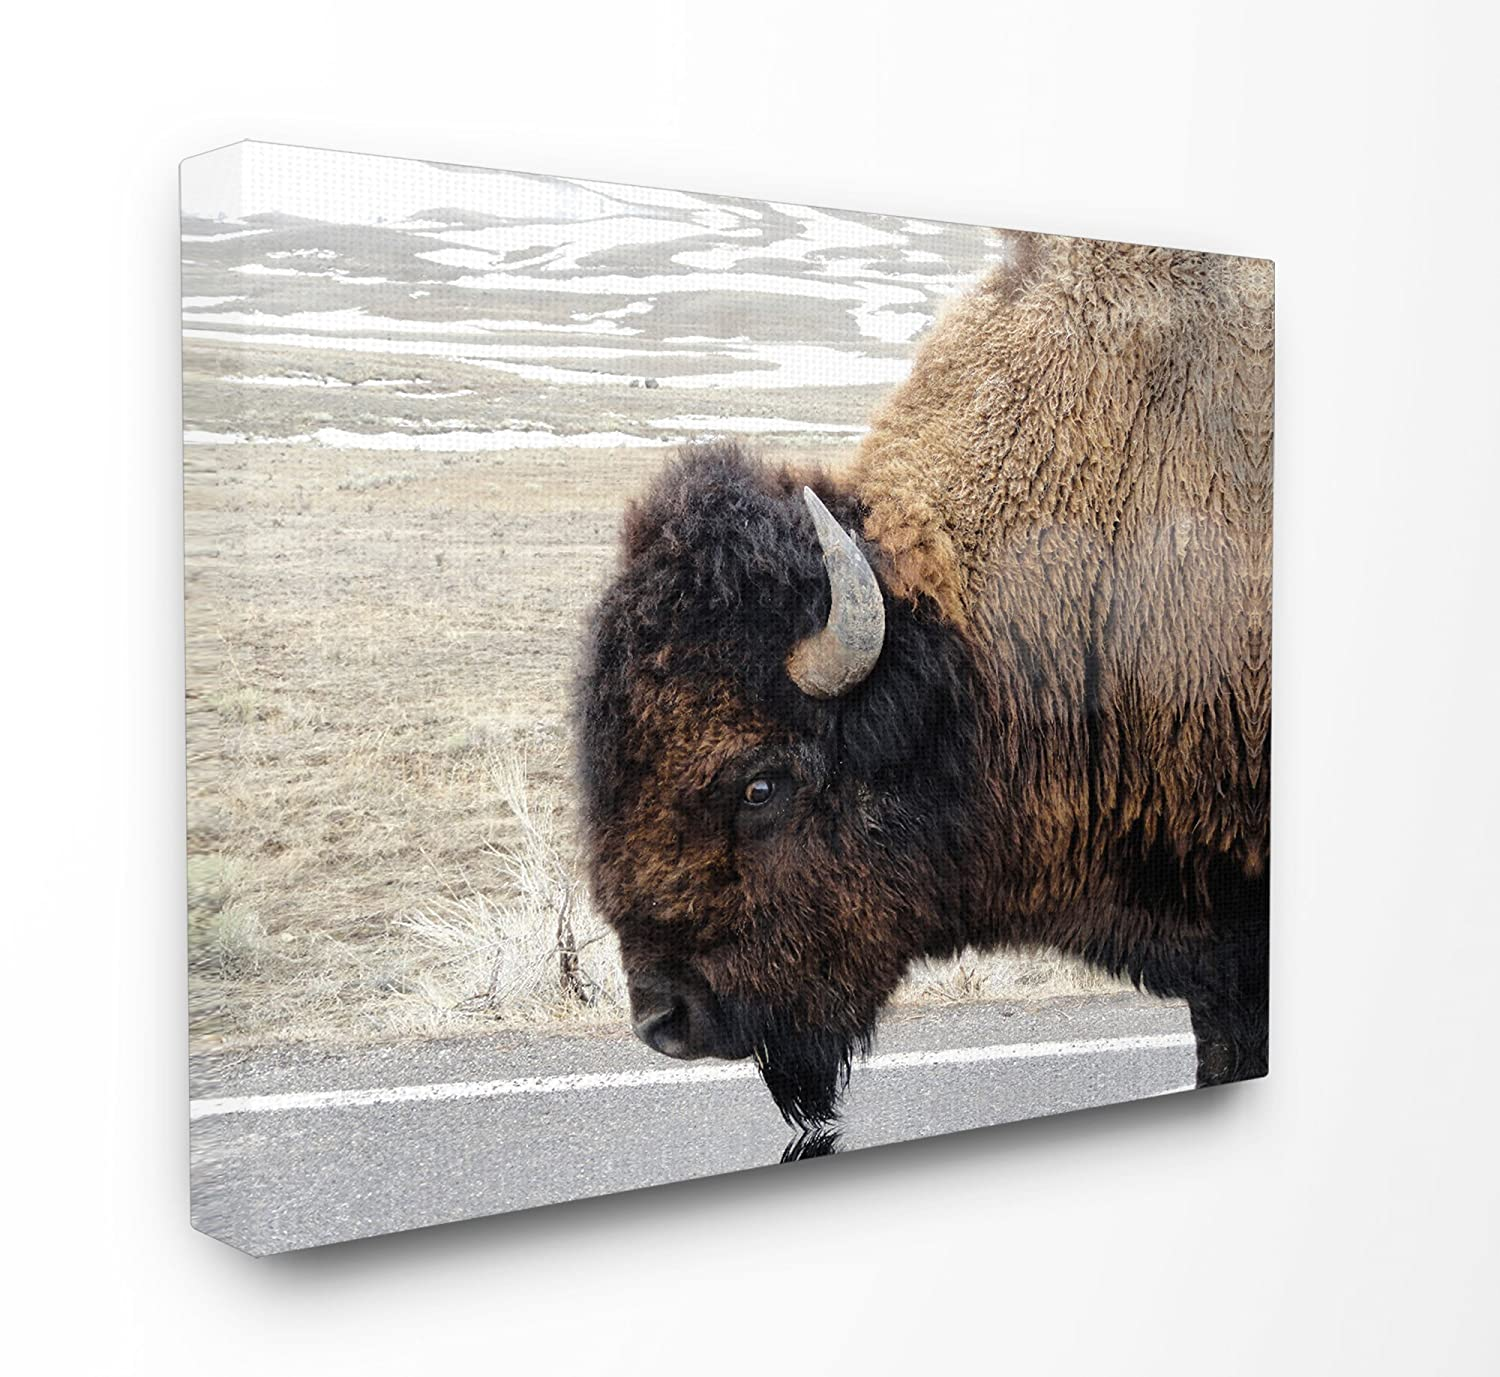 Stupell Industries Beautiful Buffalo Photography XXL Stretched Canvas Wall Art, Proudly Made in USA